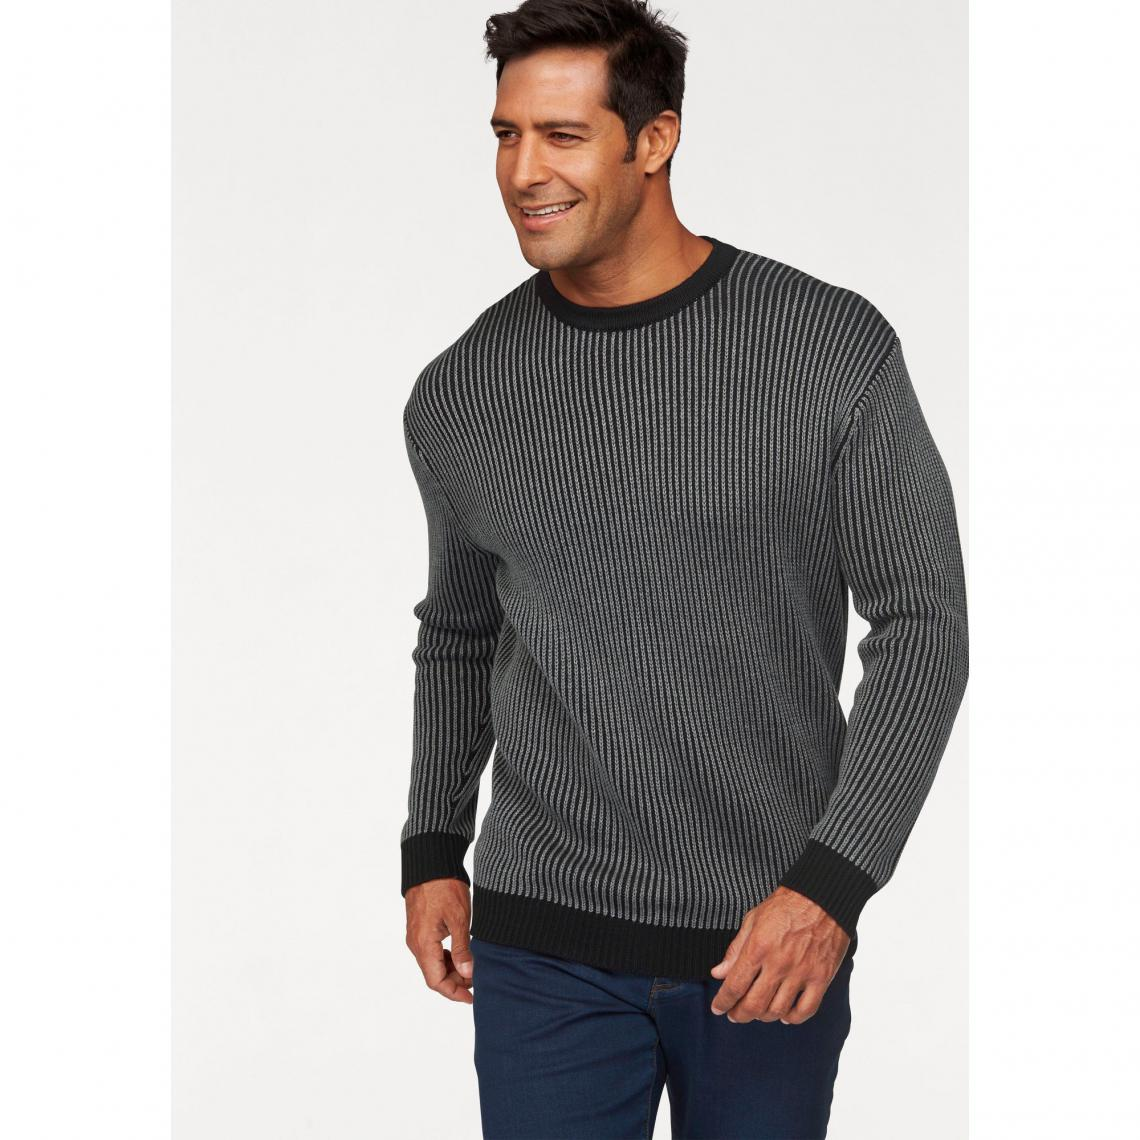 revendeur 41b0b 6f3f1 Pull col rond manches longues maille bicolore homme Man's ...